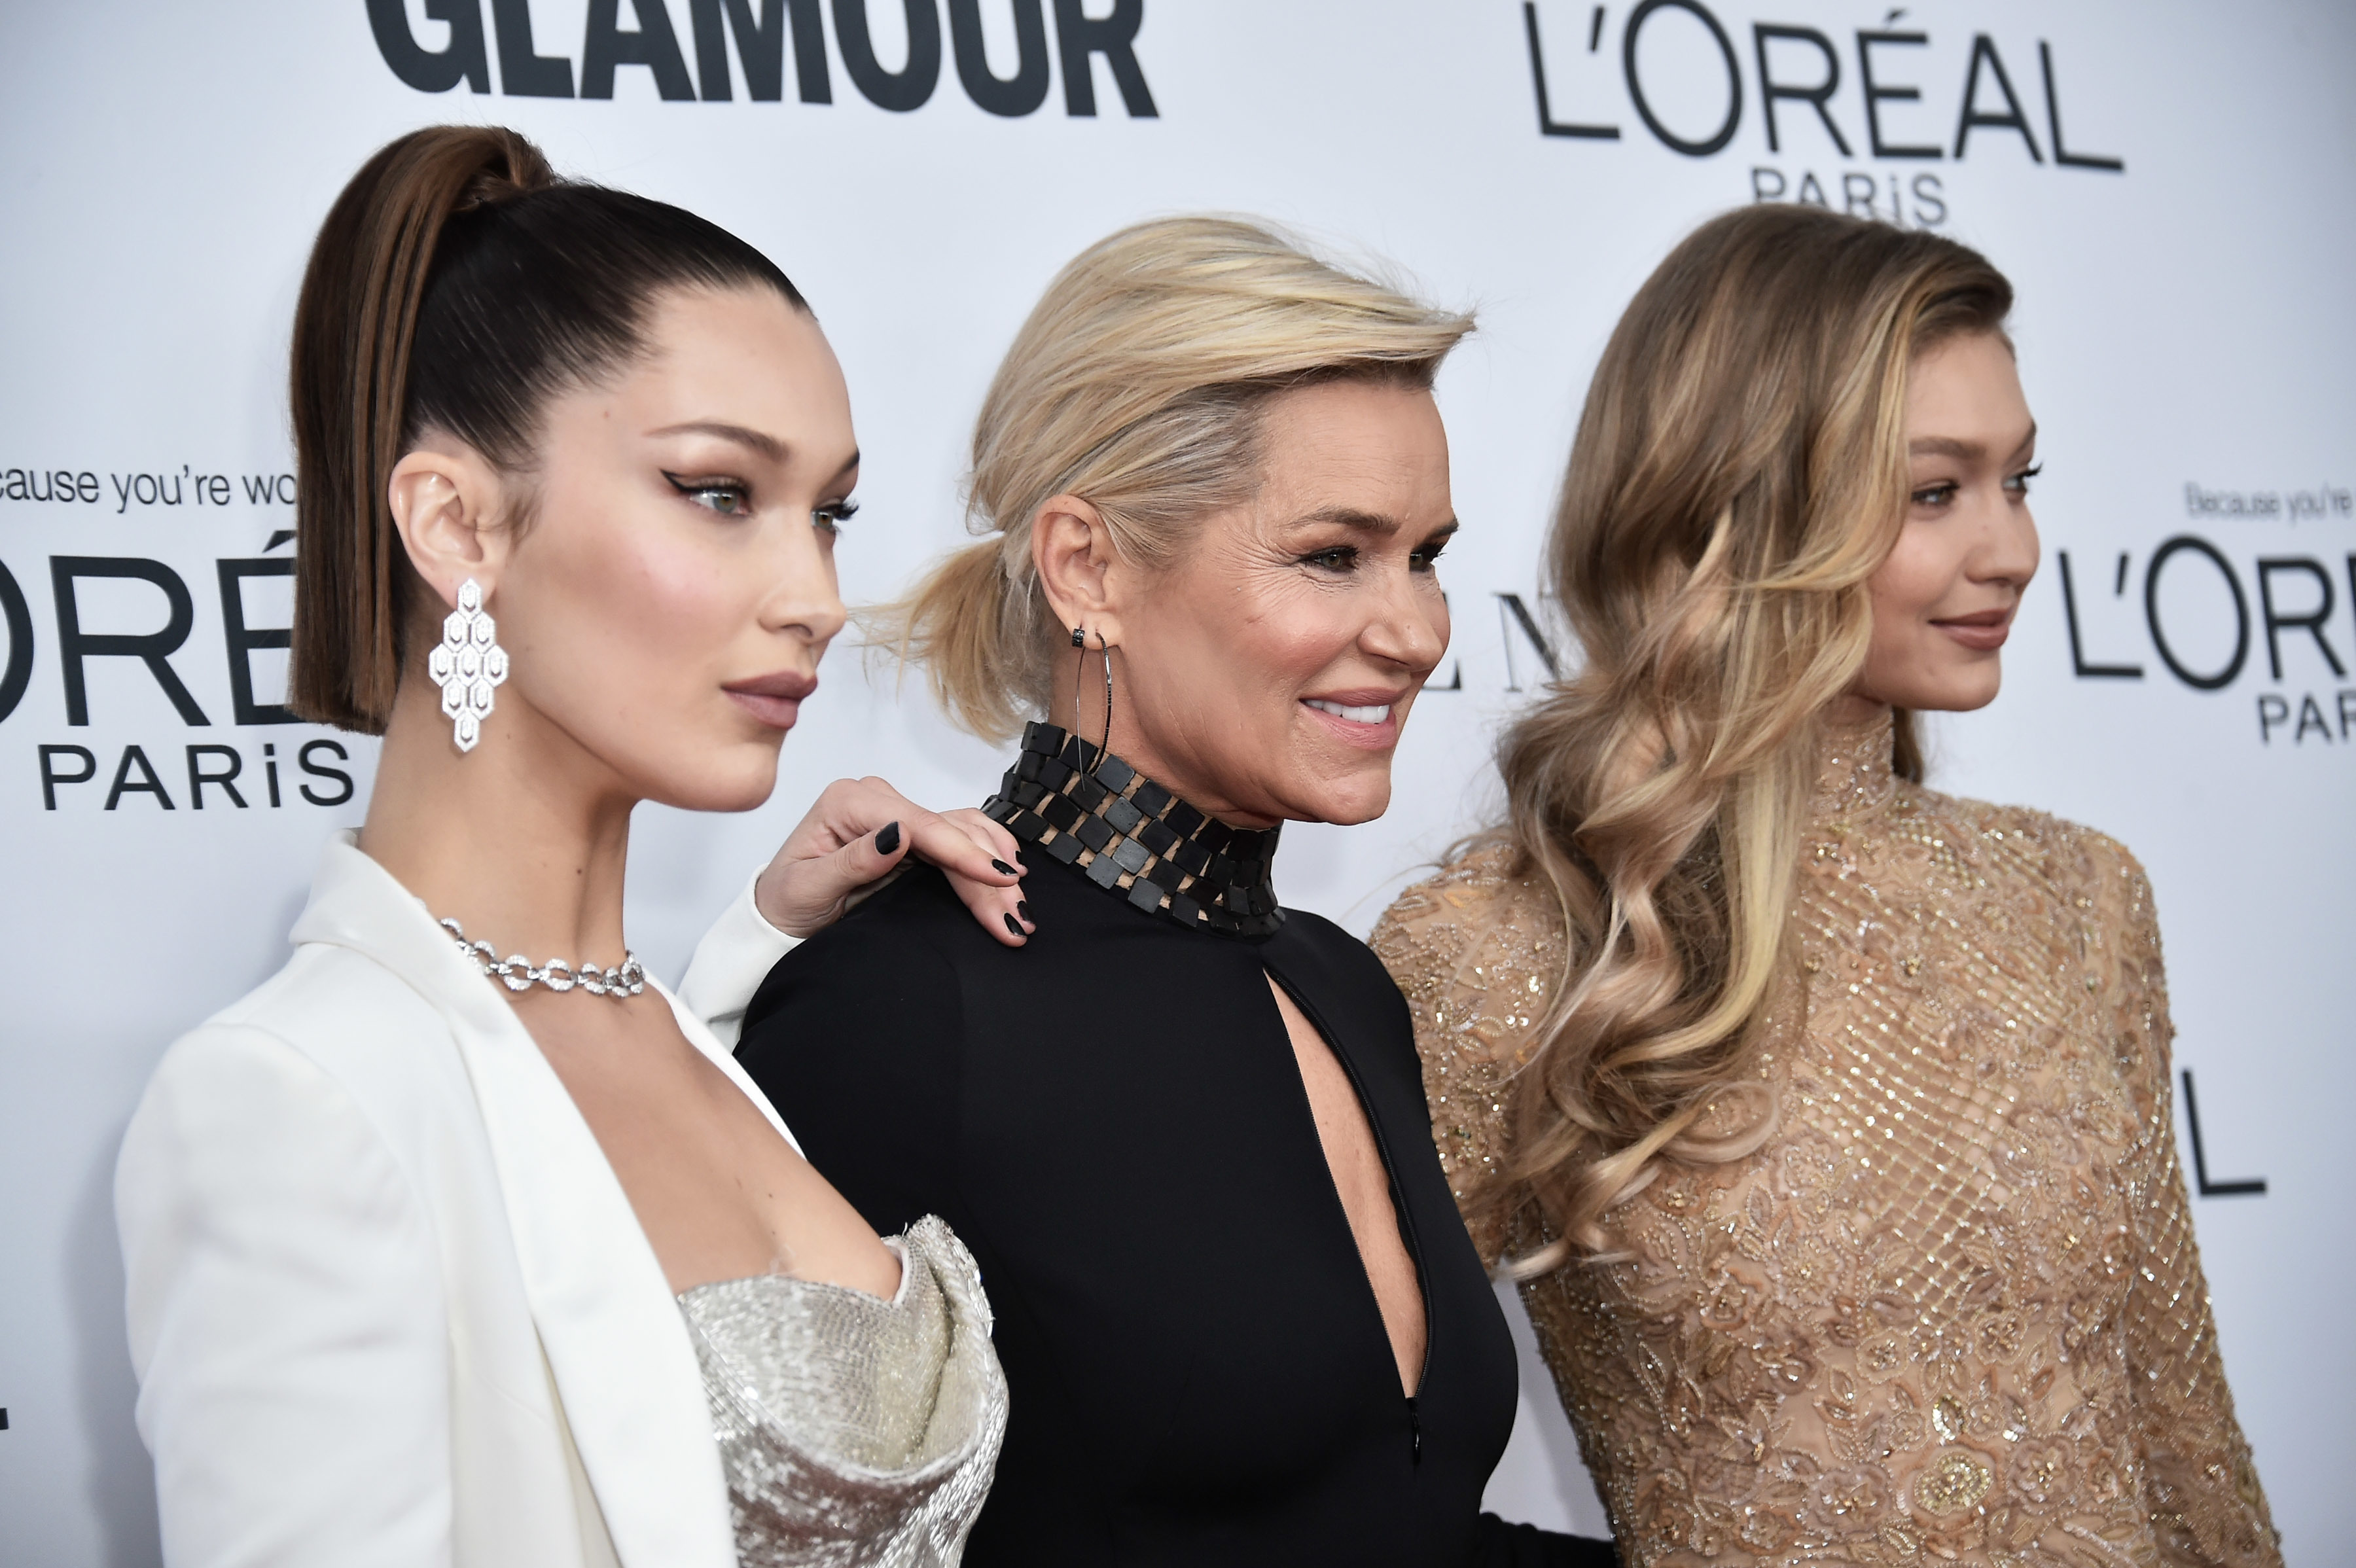 Bella Hadid, Yolanda Hadid, and Gigi Hadid attend the Glamour Women of the Year Awards at the Kings Theater in Brooklyn, New York City on November 13, 2017. (Photo by Steven Ferdman/Sipa USA)